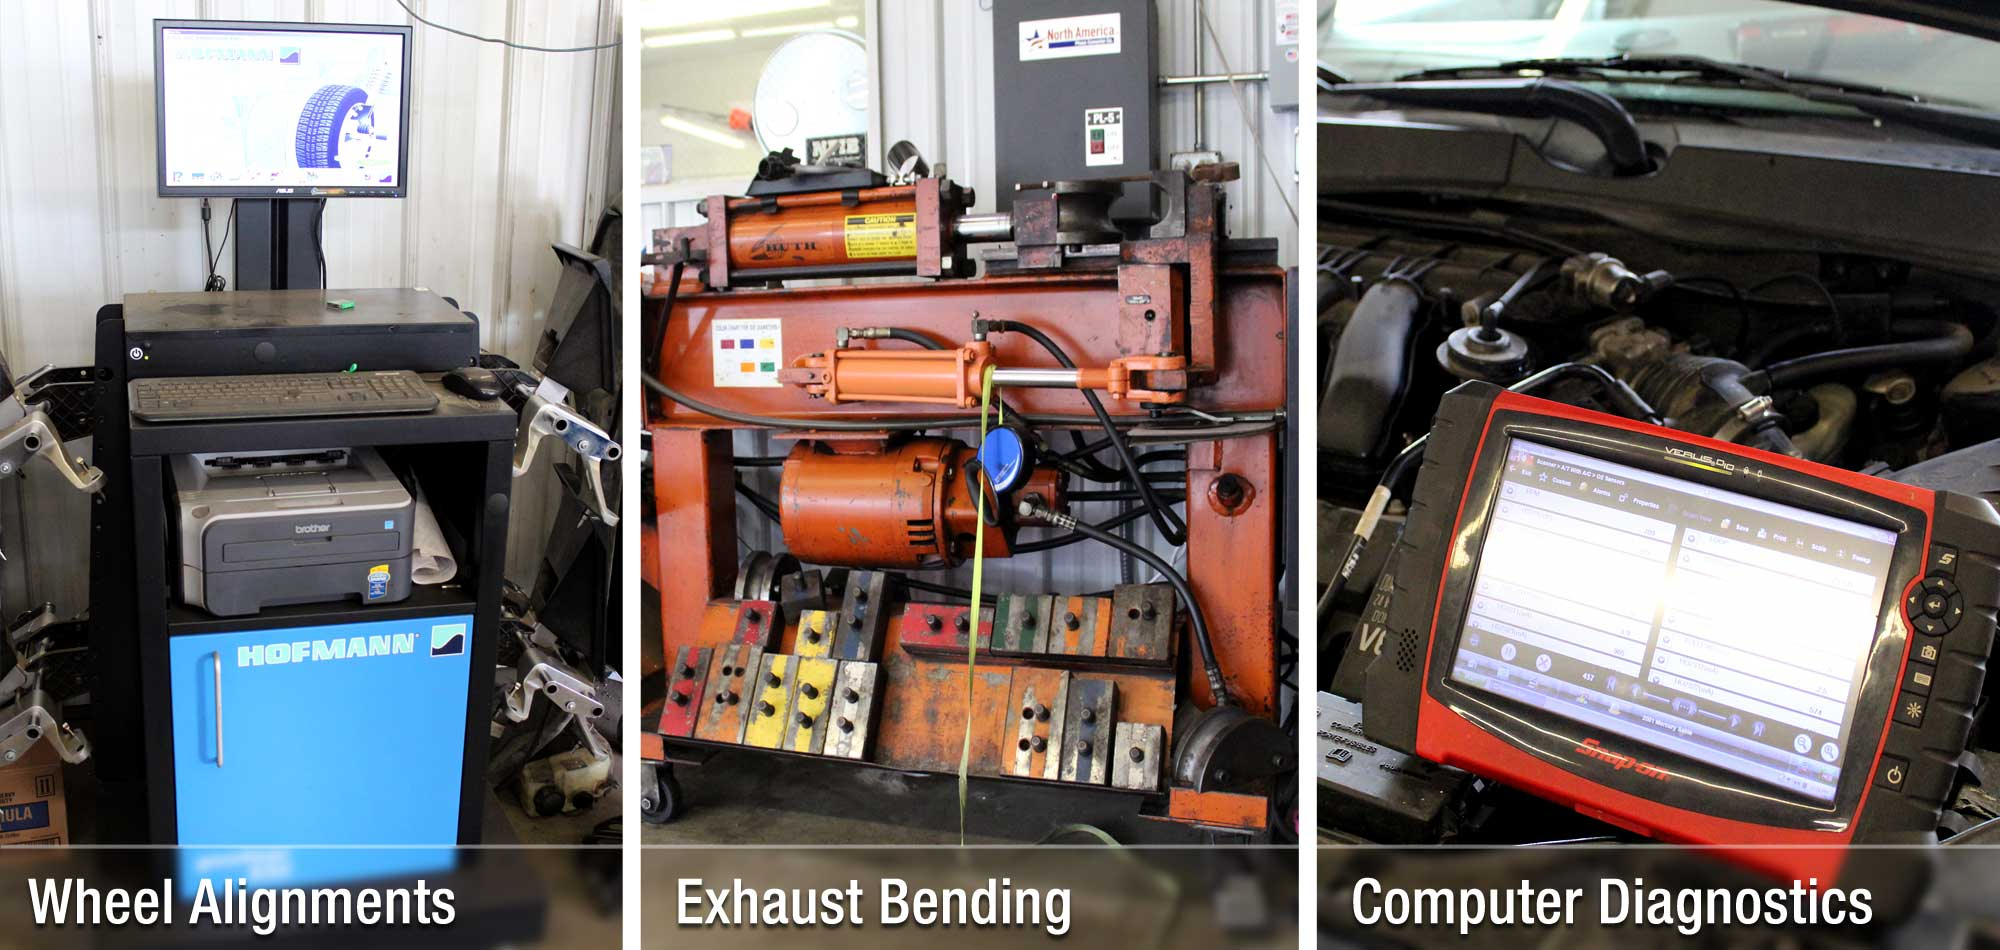 Collage of auto equipment at Murphy's Auto Center - Wheel Alignment machine, exhaust bending machine, engine diagnostic tools